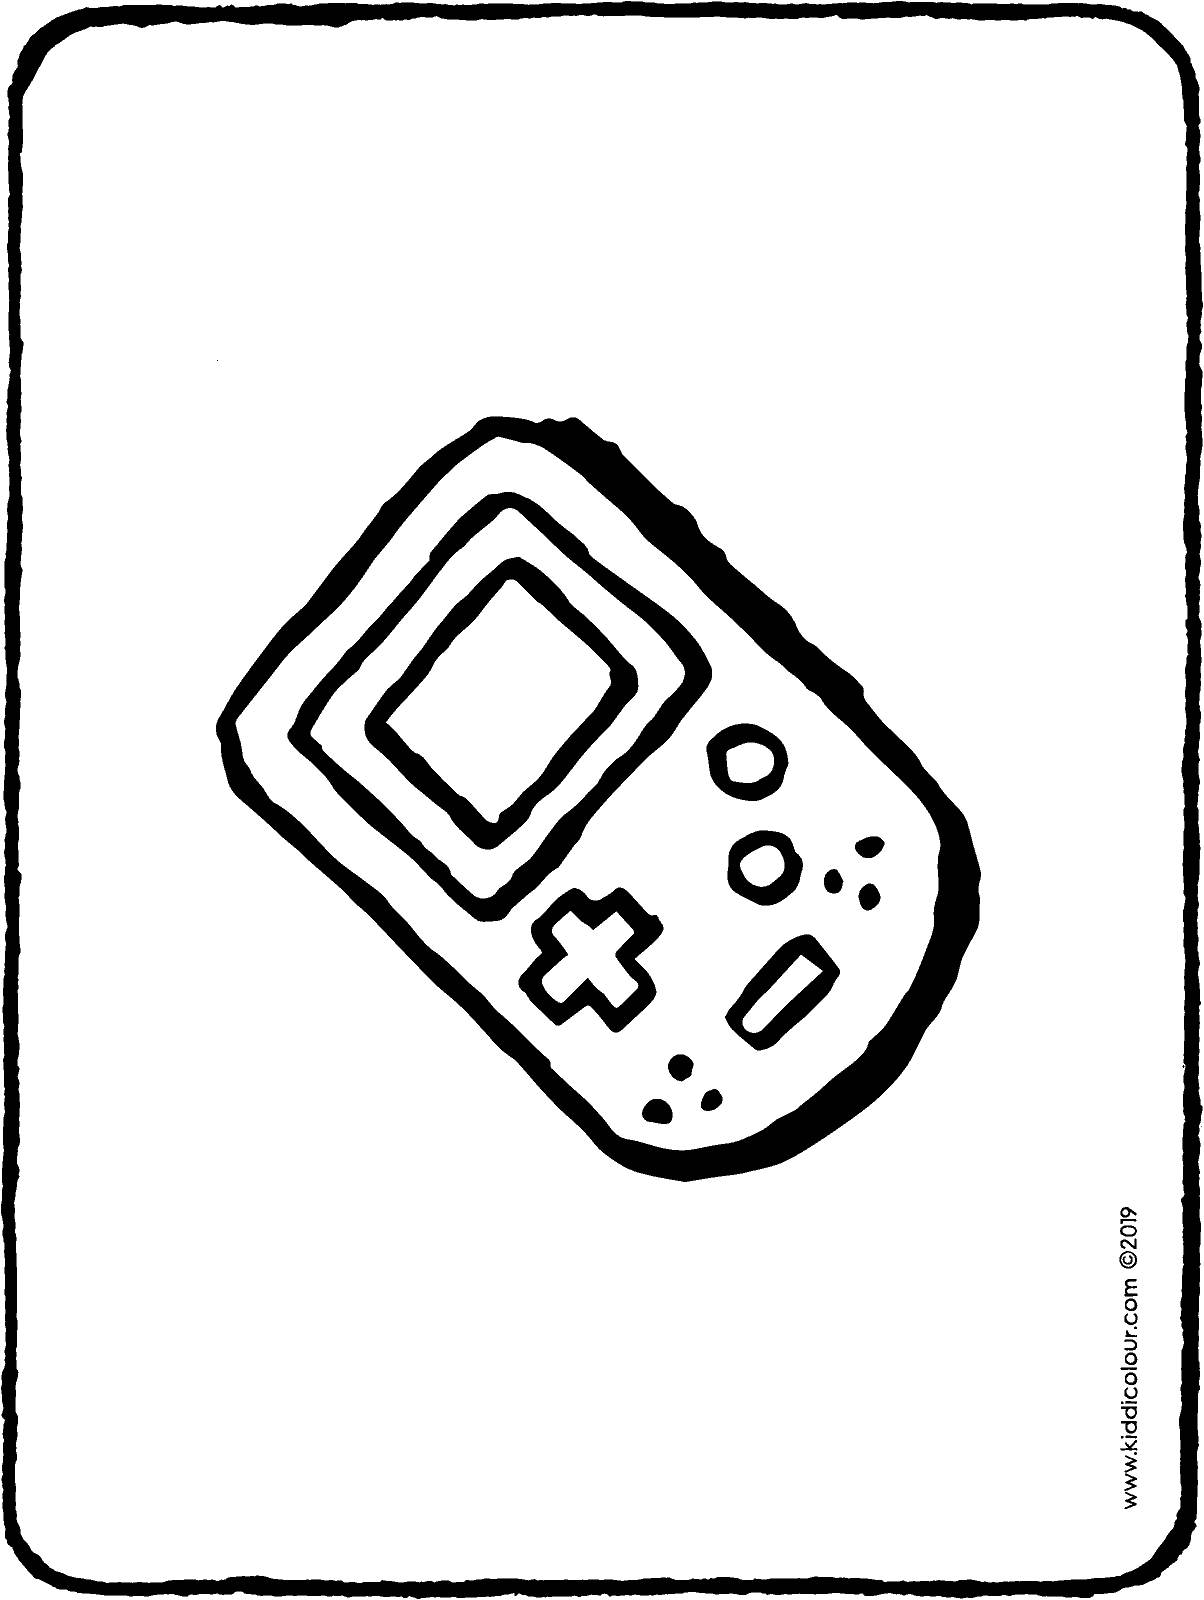 gameboy colouring page drawing picture 01H